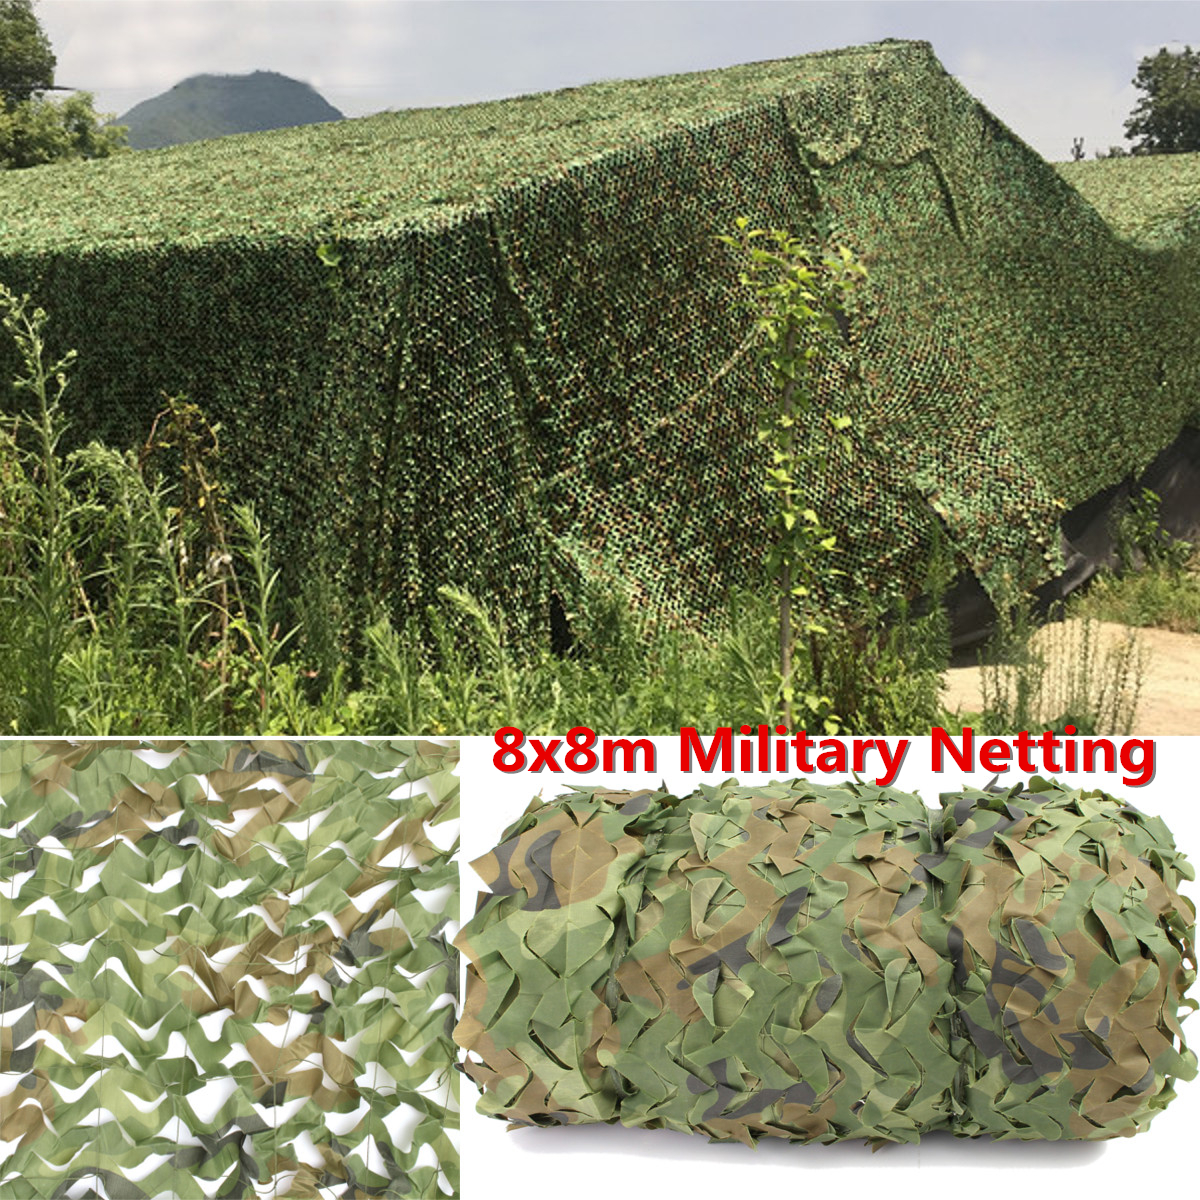 8X8m Woodland Camouflage Netting Military Army Camo Hunting Camp Cover Net Outdoor Camping Sun Shelter8X8m Woodland Camouflage Netting Military Army Camo Hunting Camp Cover Net Outdoor Camping Sun Shelter